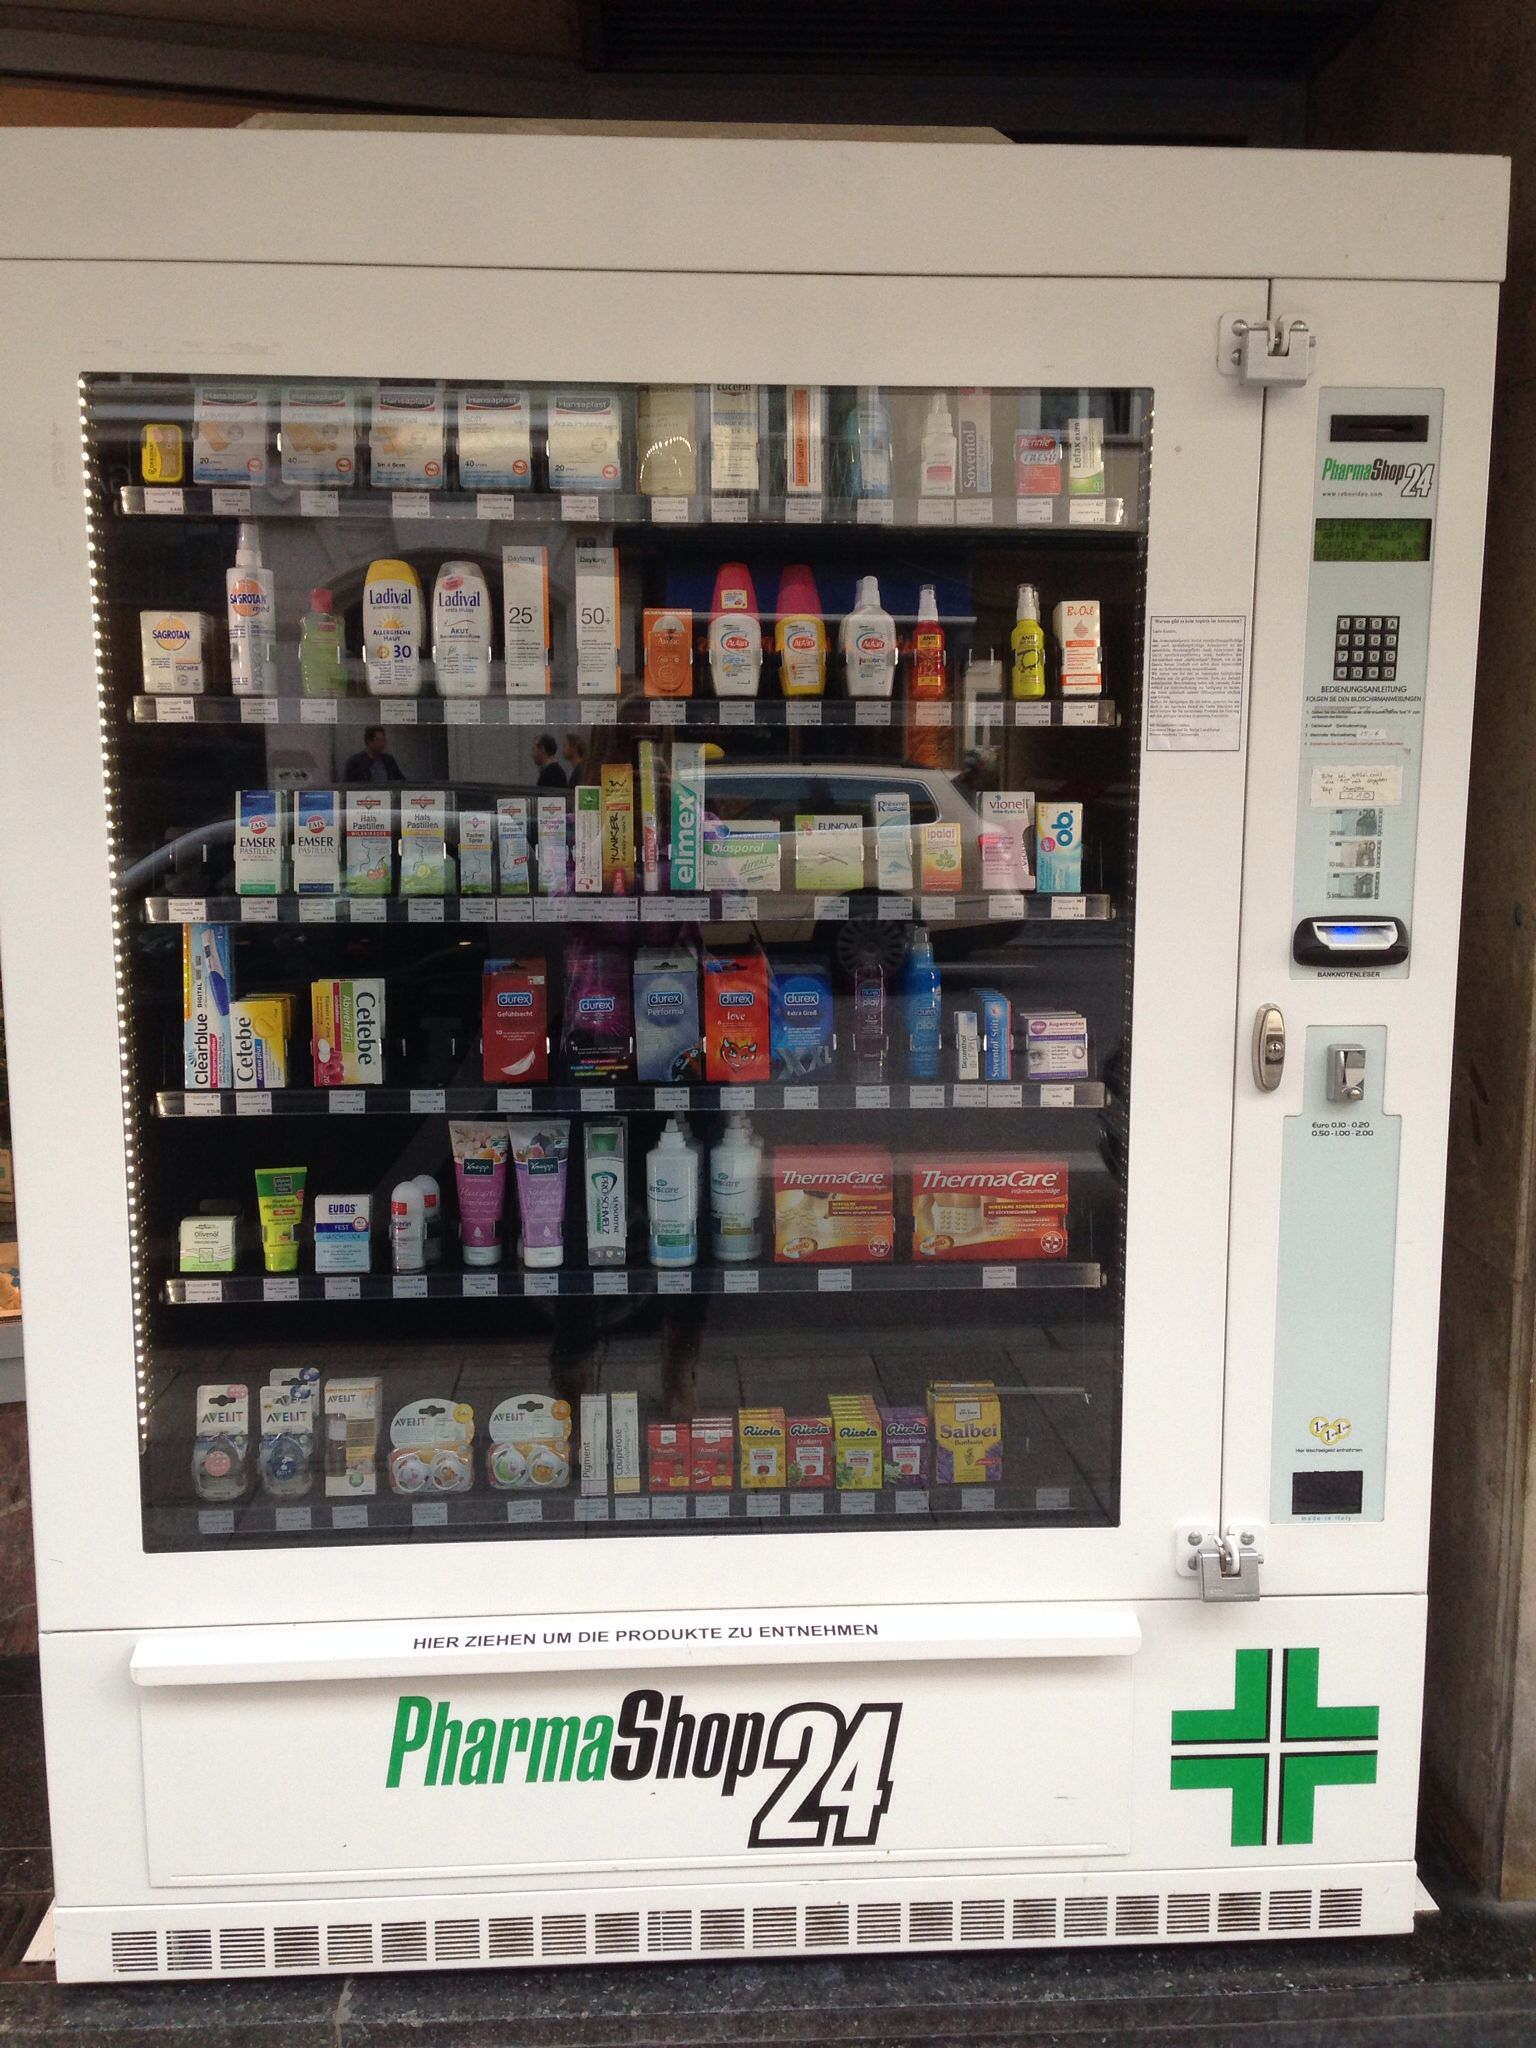 Pharmacy Automat, condoms anyone? P (it was on the street